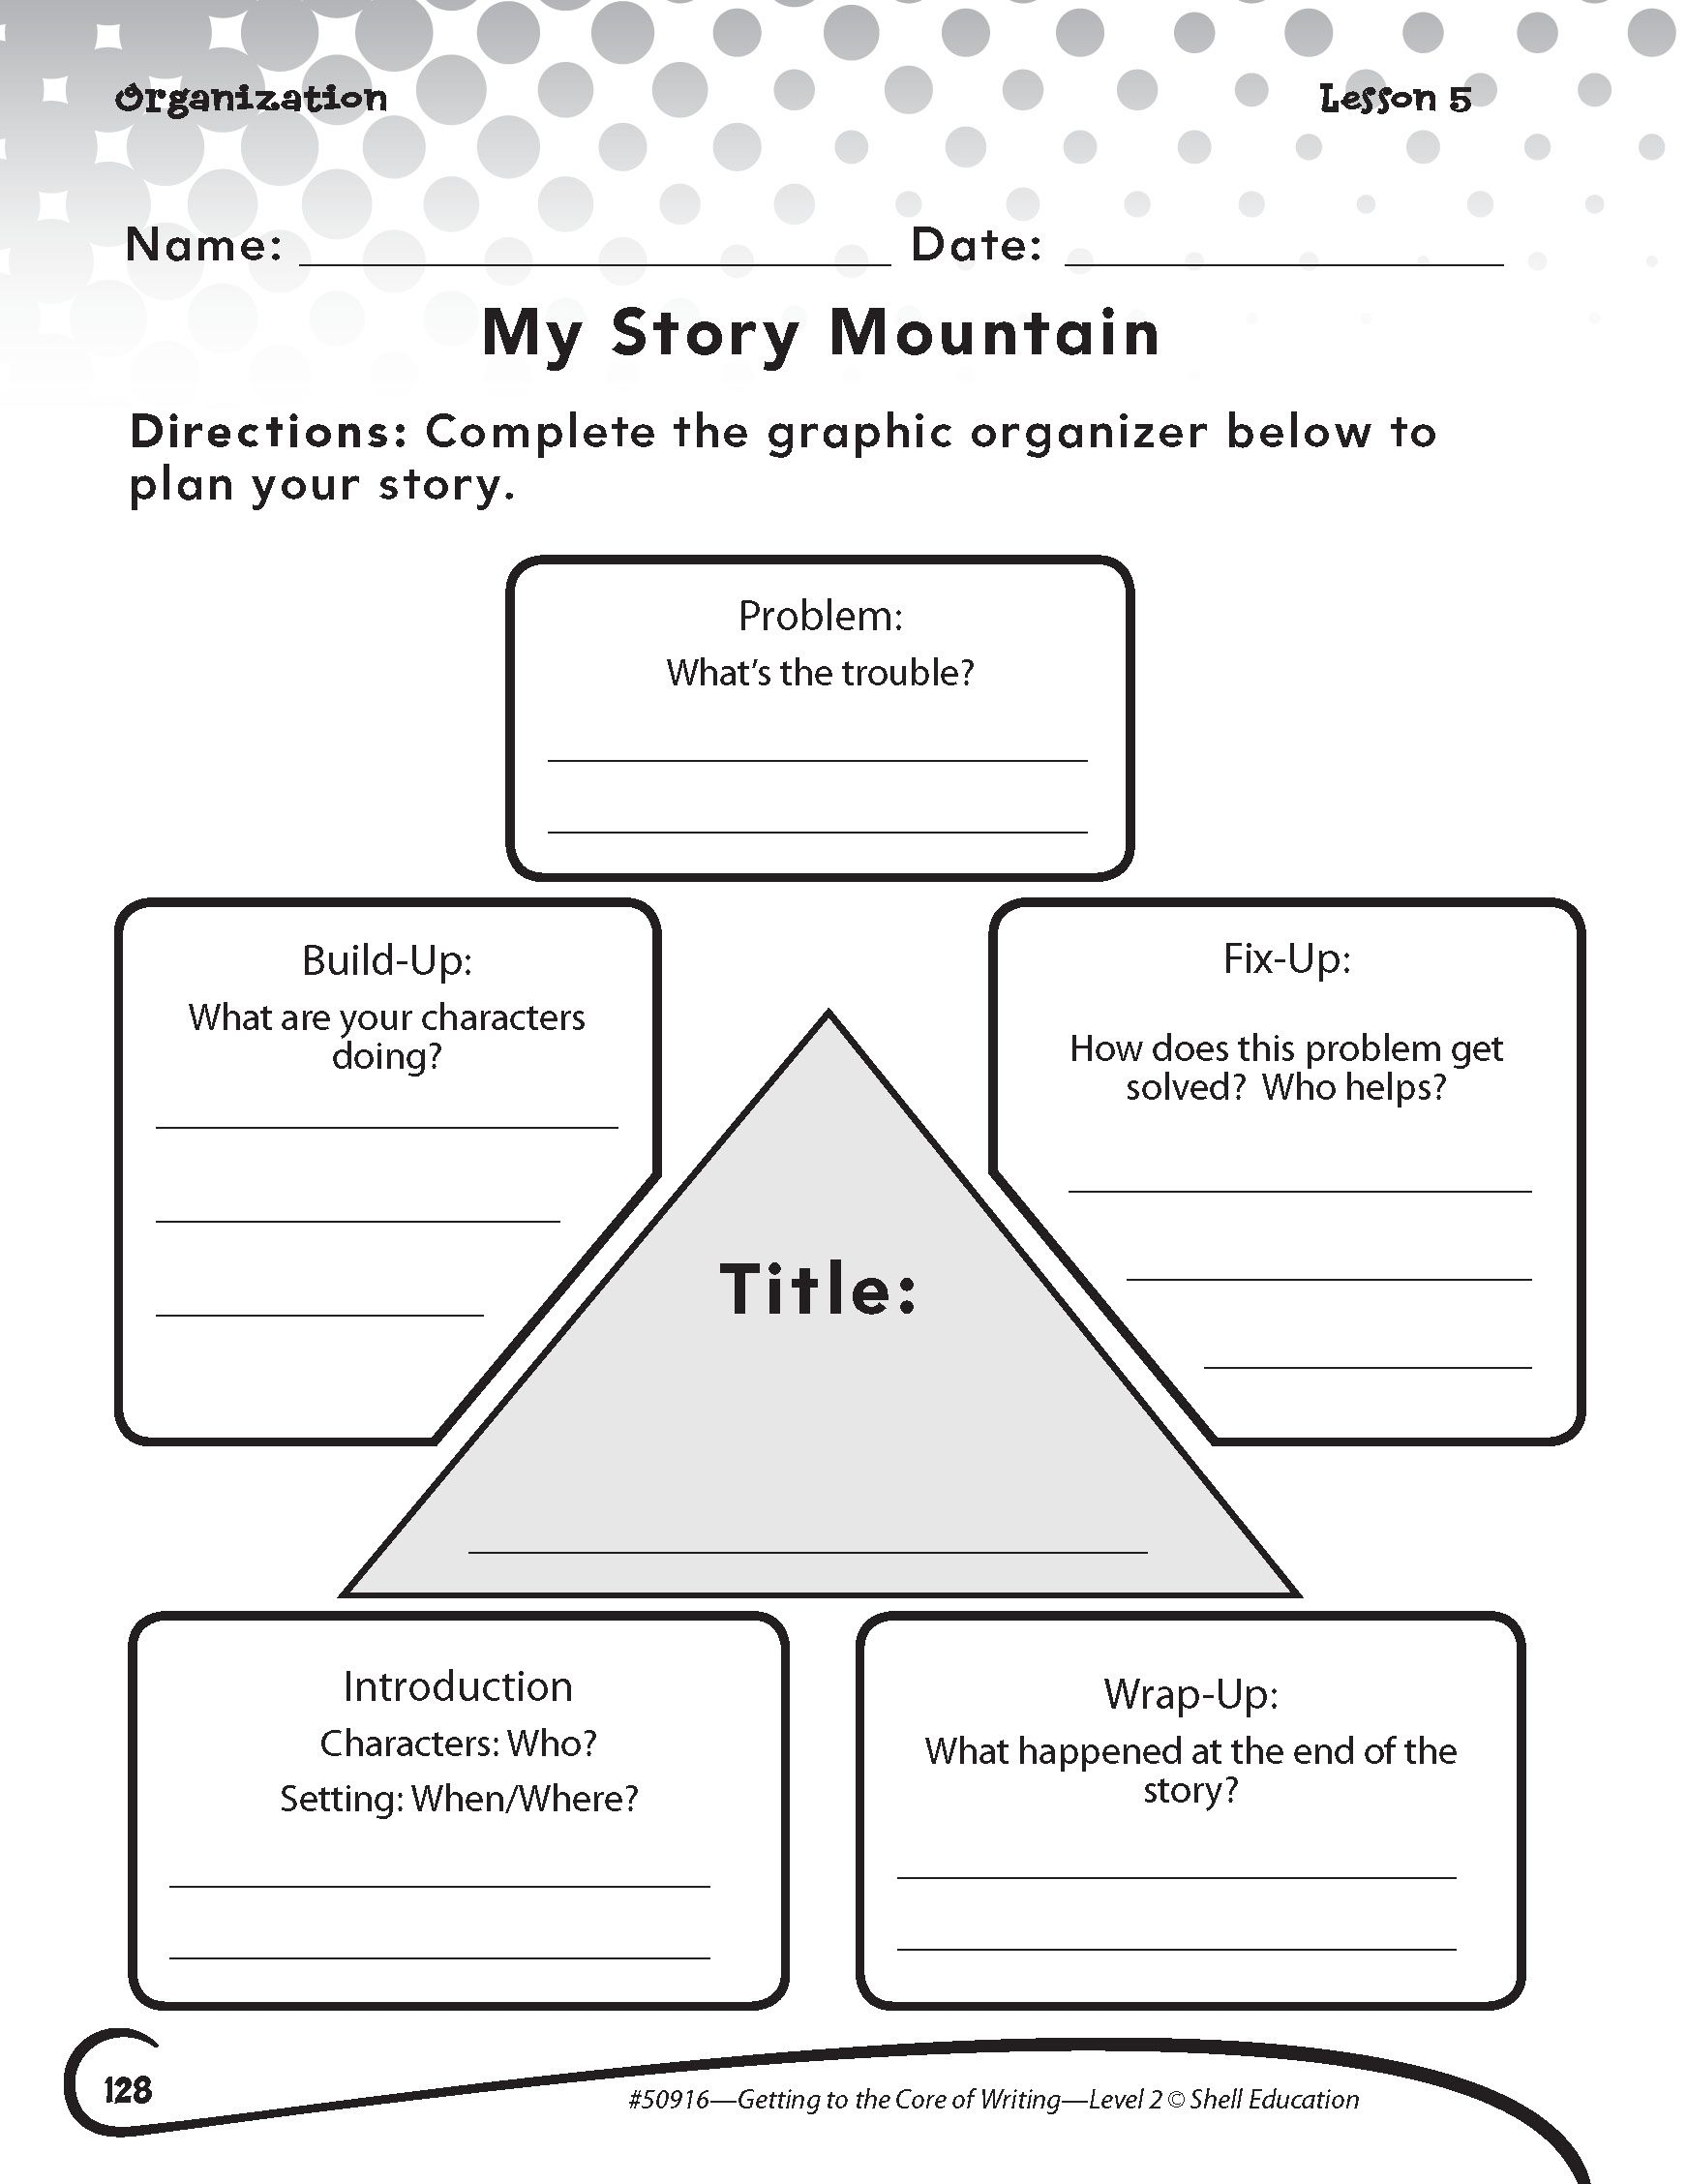 medium resolution of  my story mountain activity from getting to the core of writing second grade learn more at shelleducation com shelleducation